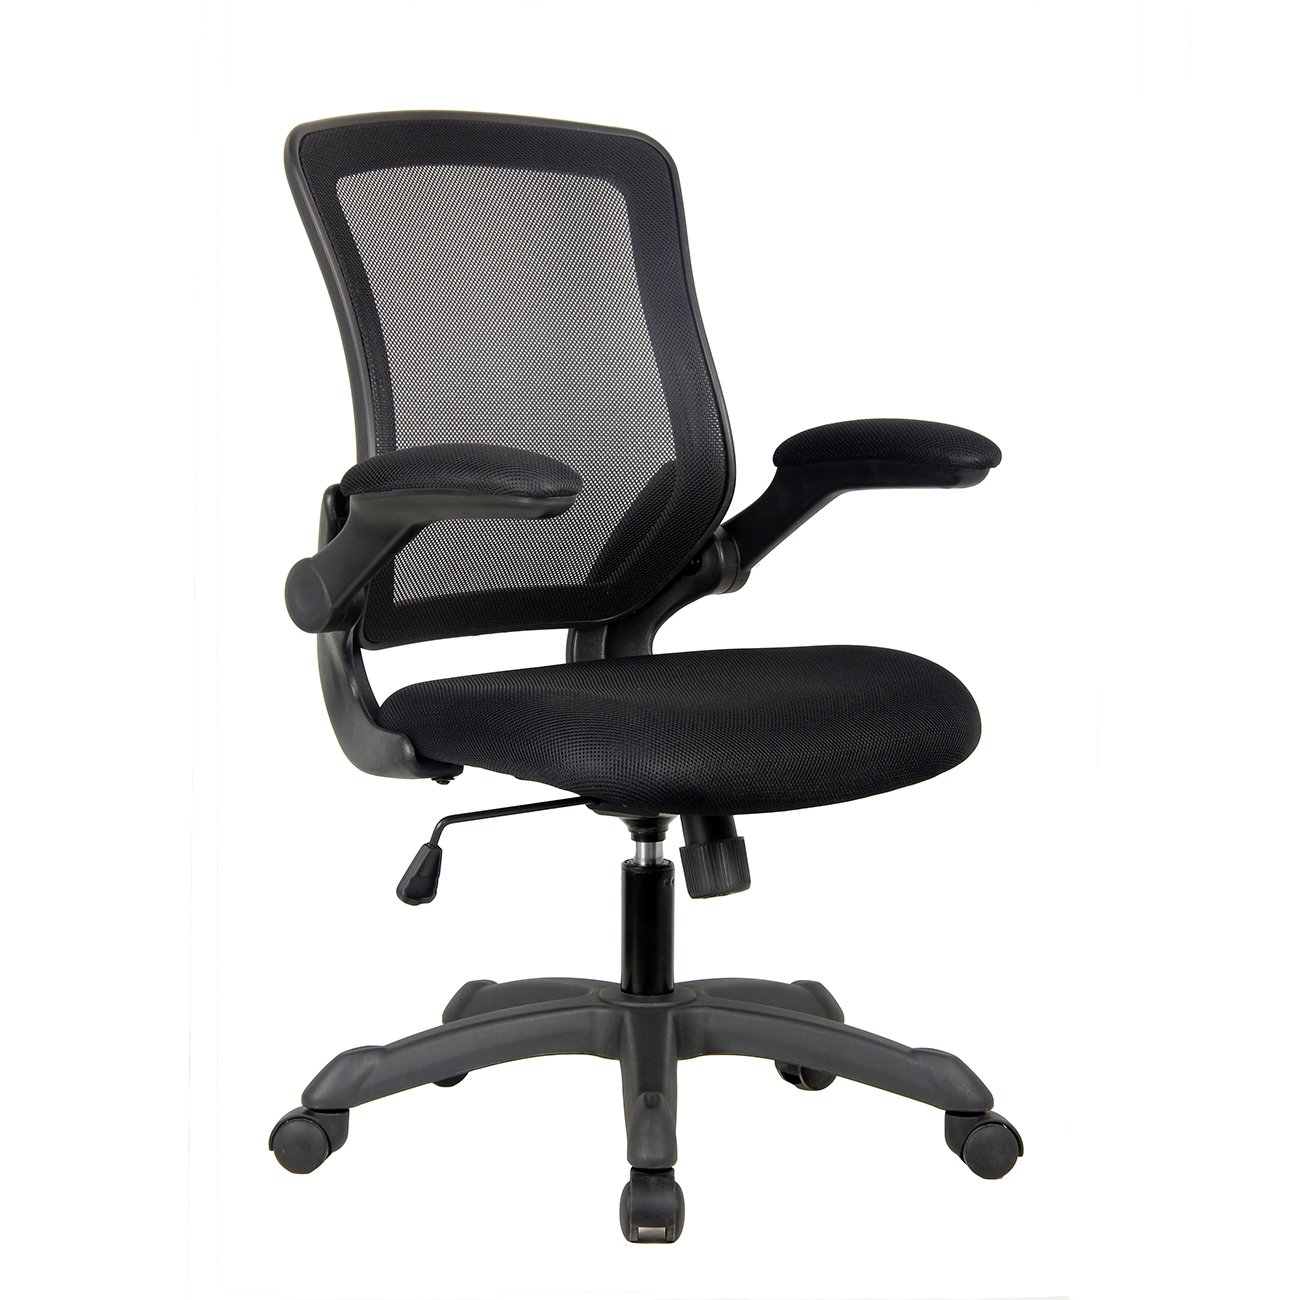 Techni Mobili Mesh Task Office Chair with Flip Up Arms. Color: Black